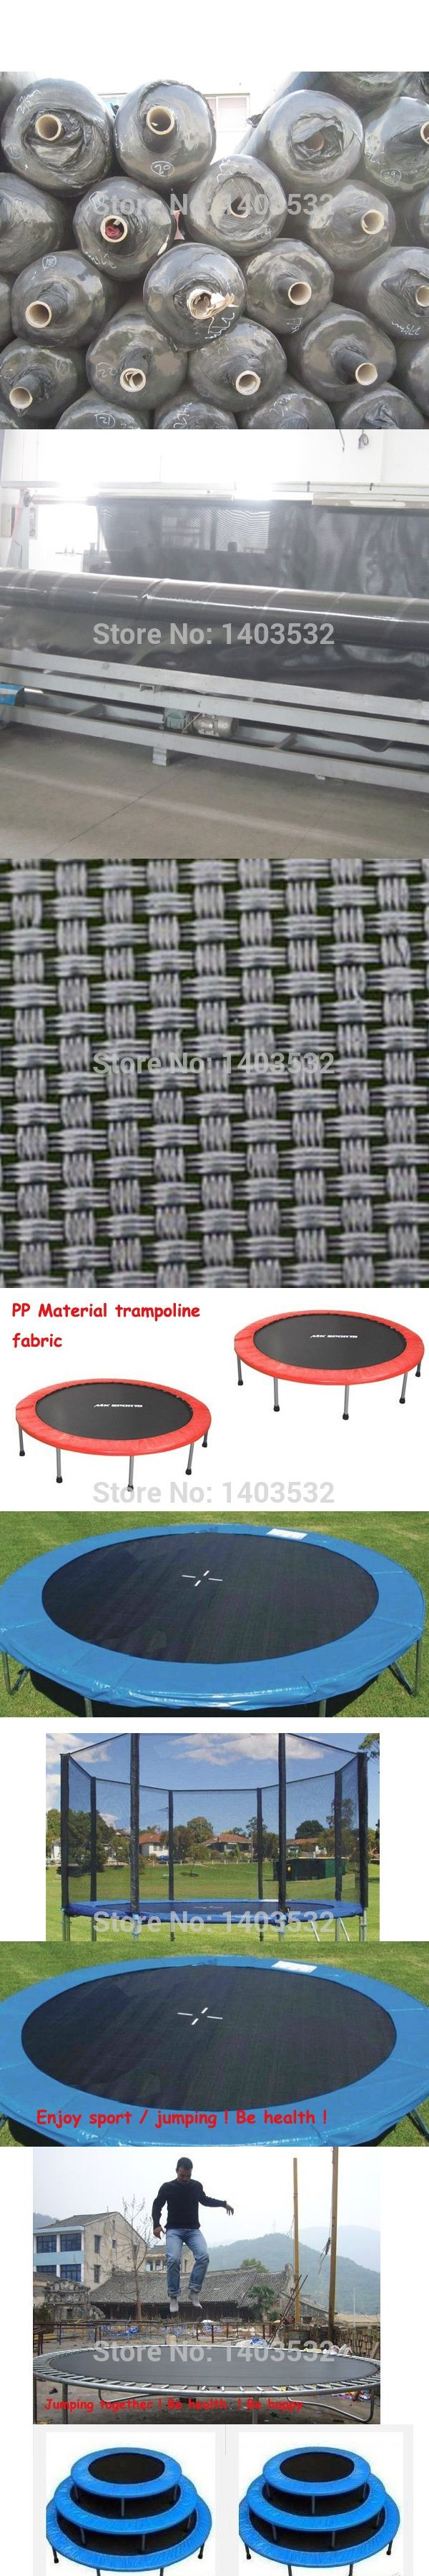 PP Material Trampoline  accessories fabric 100% polypropylene safety Jumping Bed  Bounding Bed Fabric Color Black